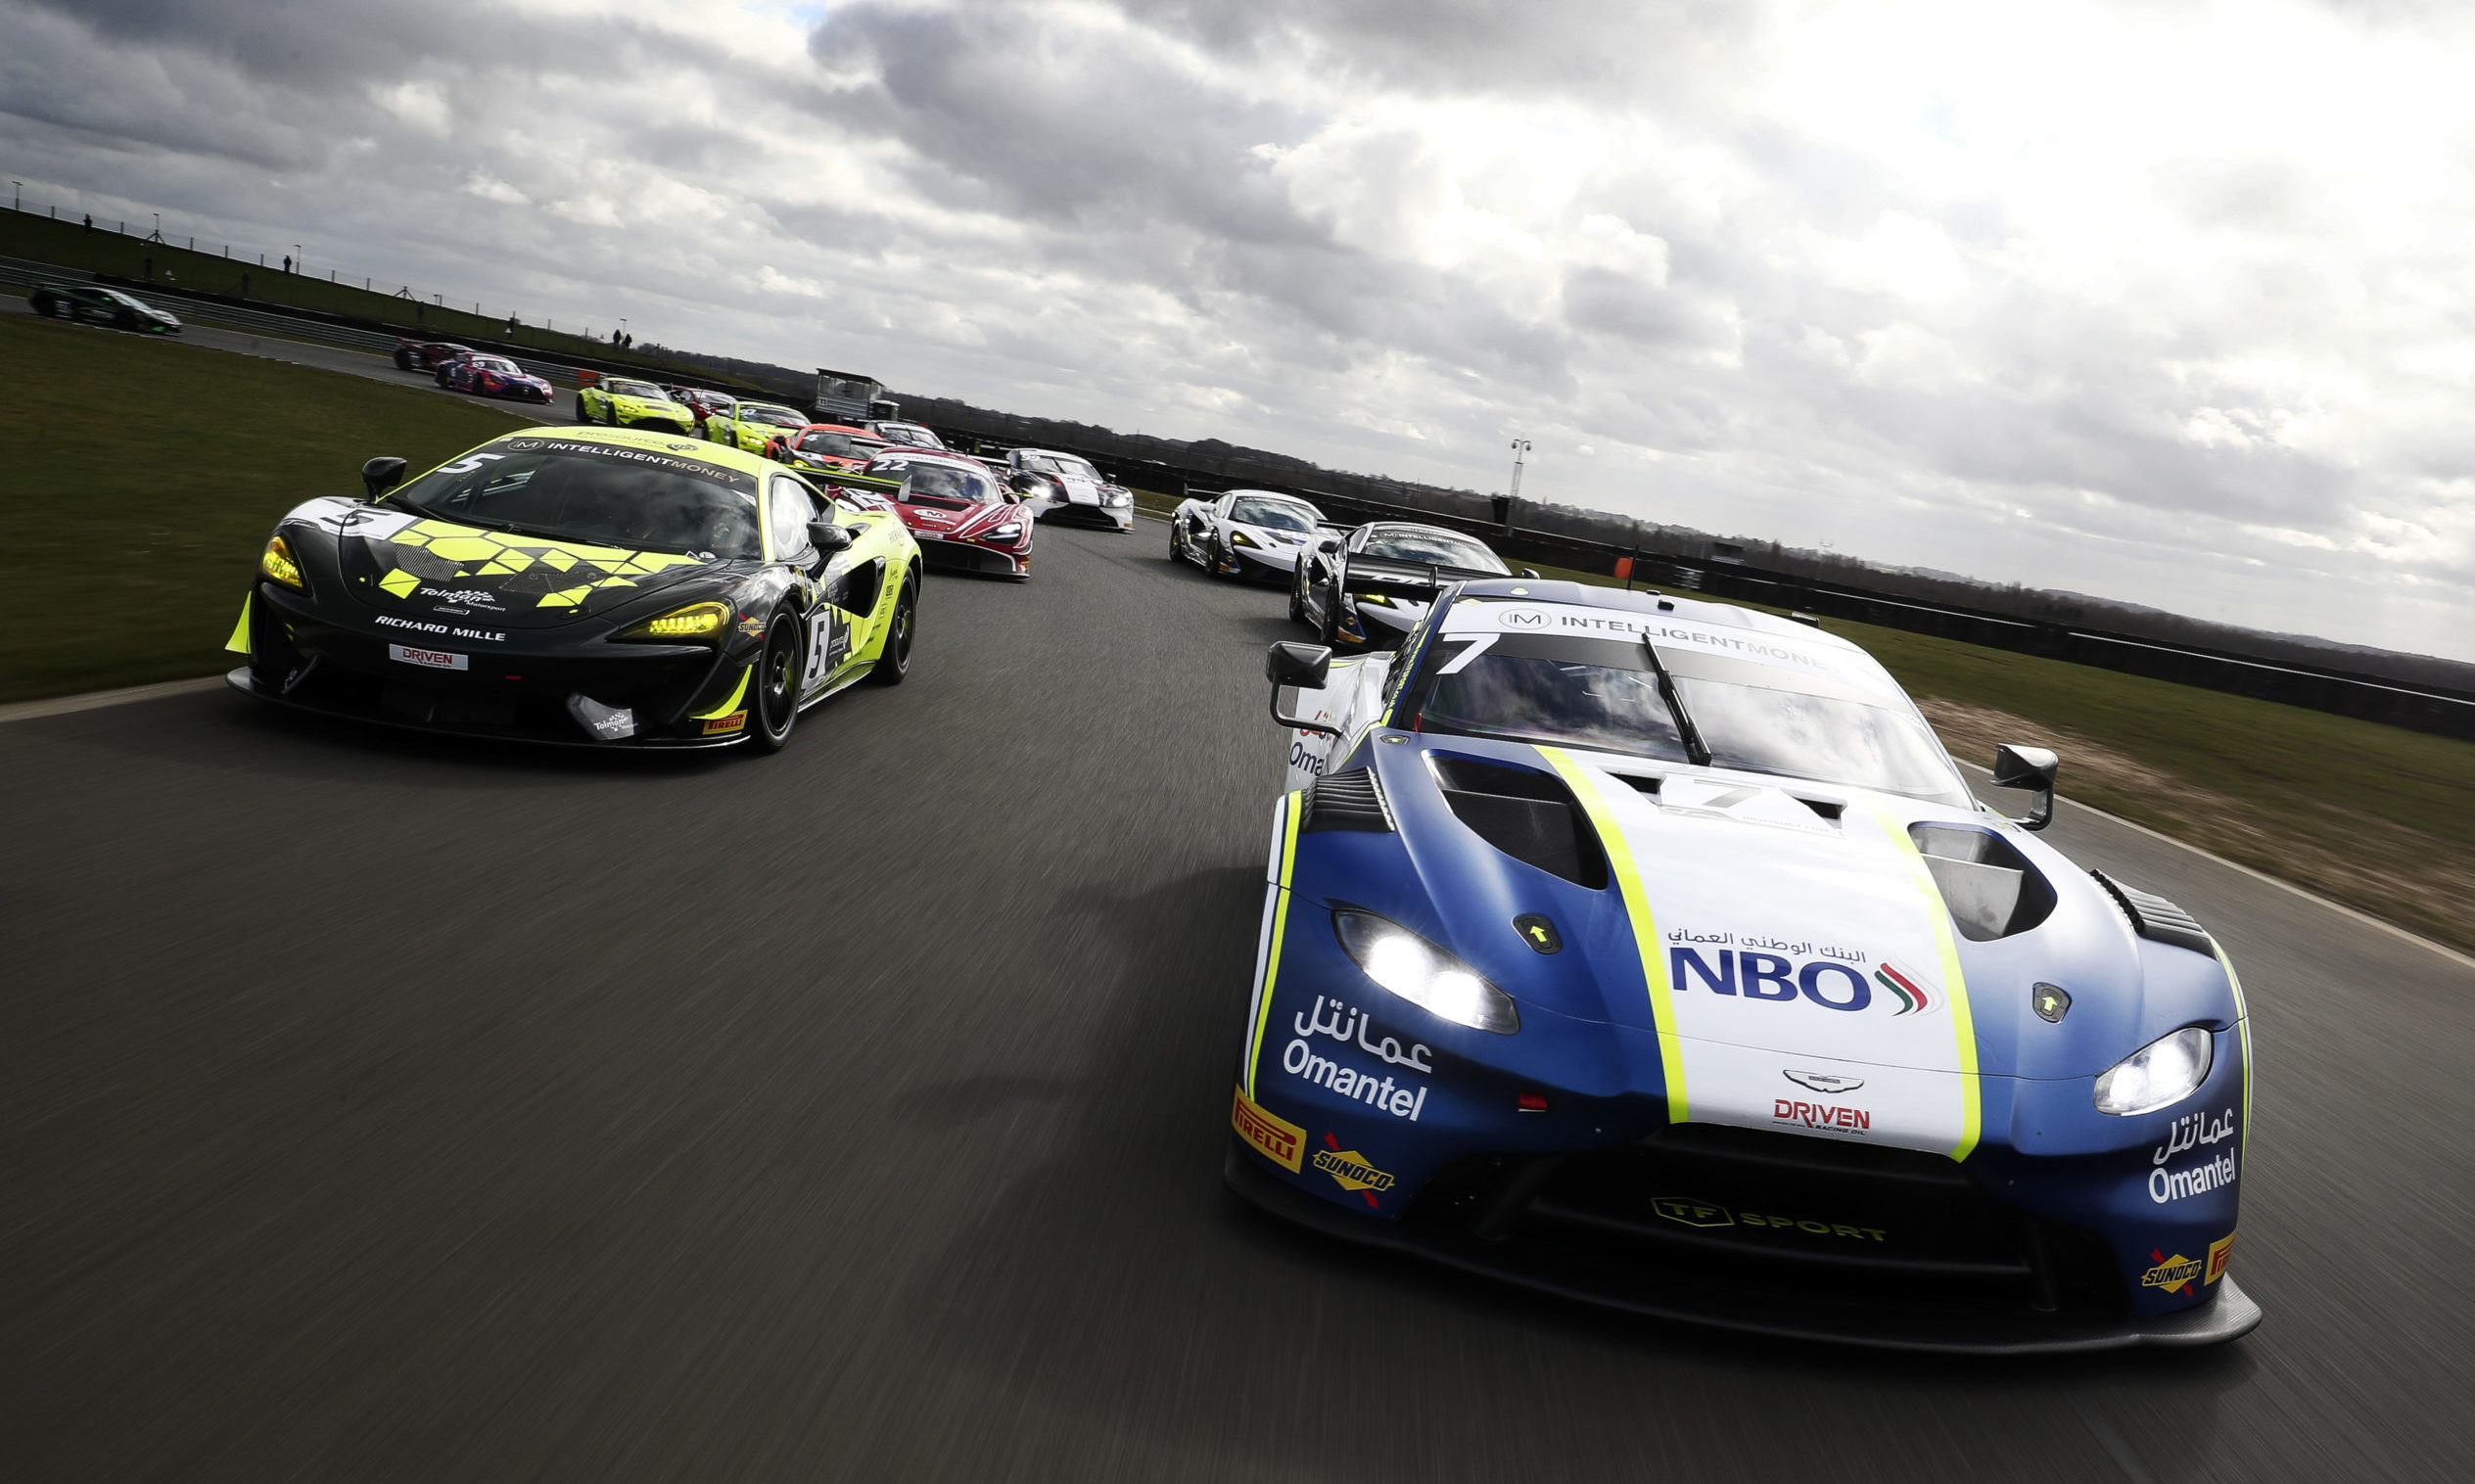 Jonny Adam/Ahmad Al Harthy Aston Martin Vantage GT3 leads the way at the 2020 British GT media day in March.